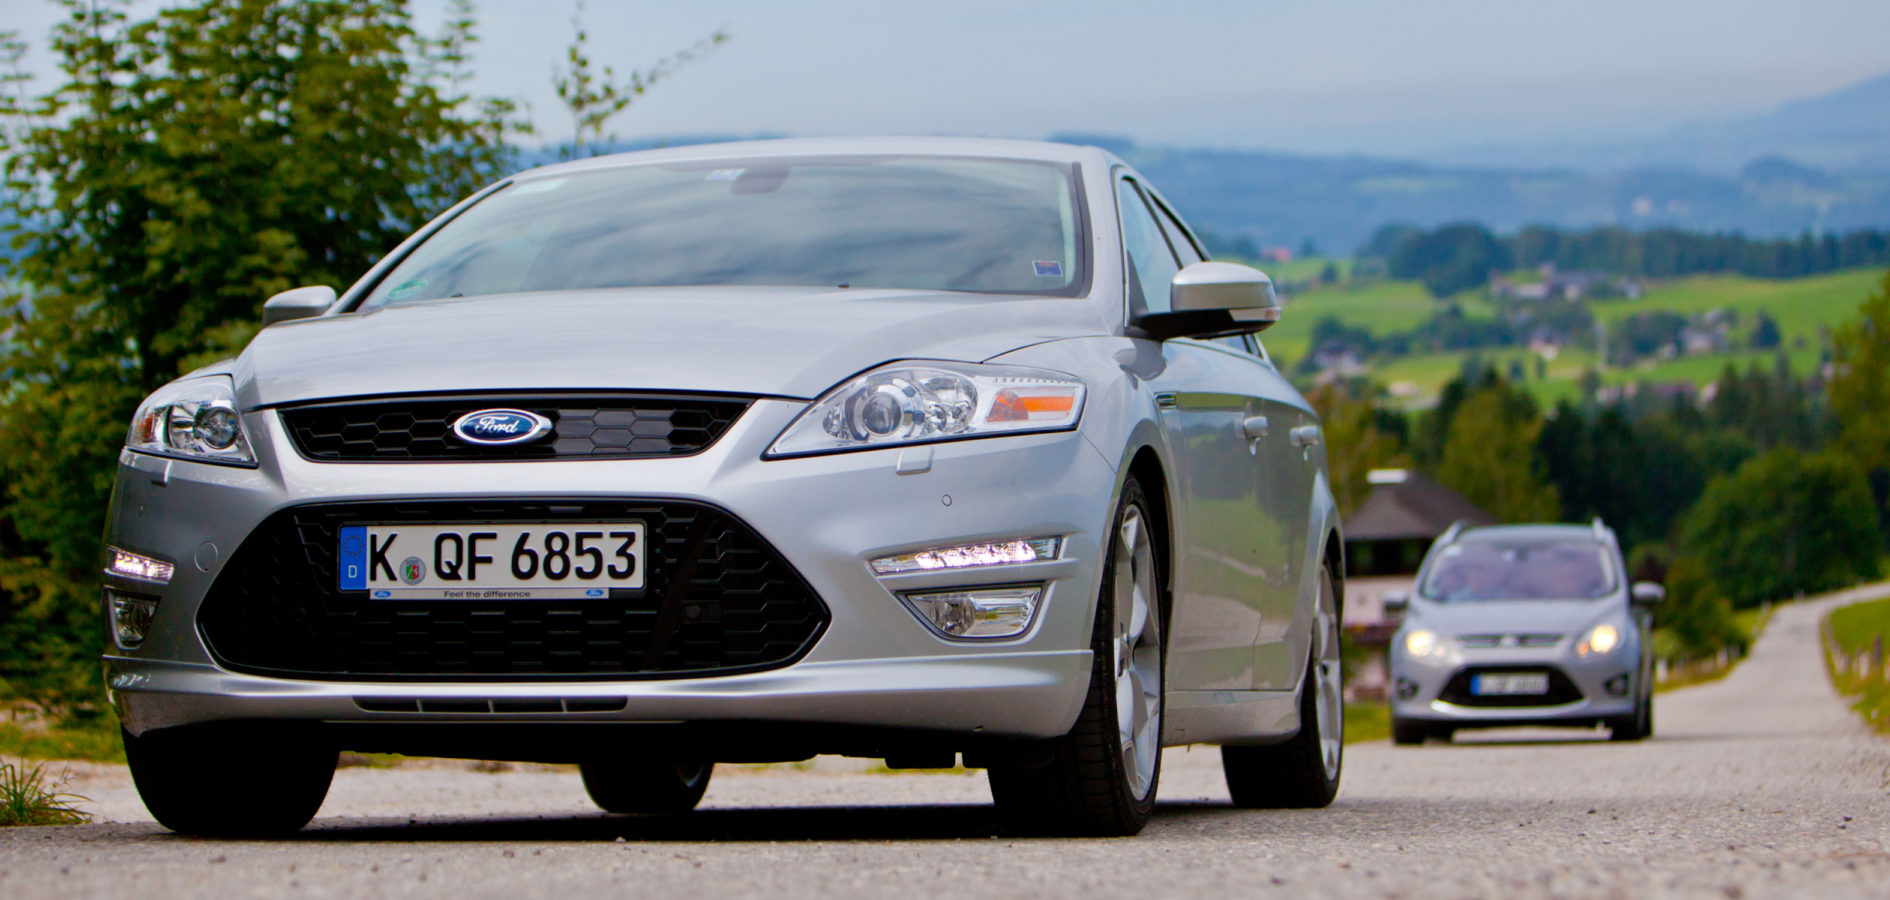 Ford Mondeo Fleet Event